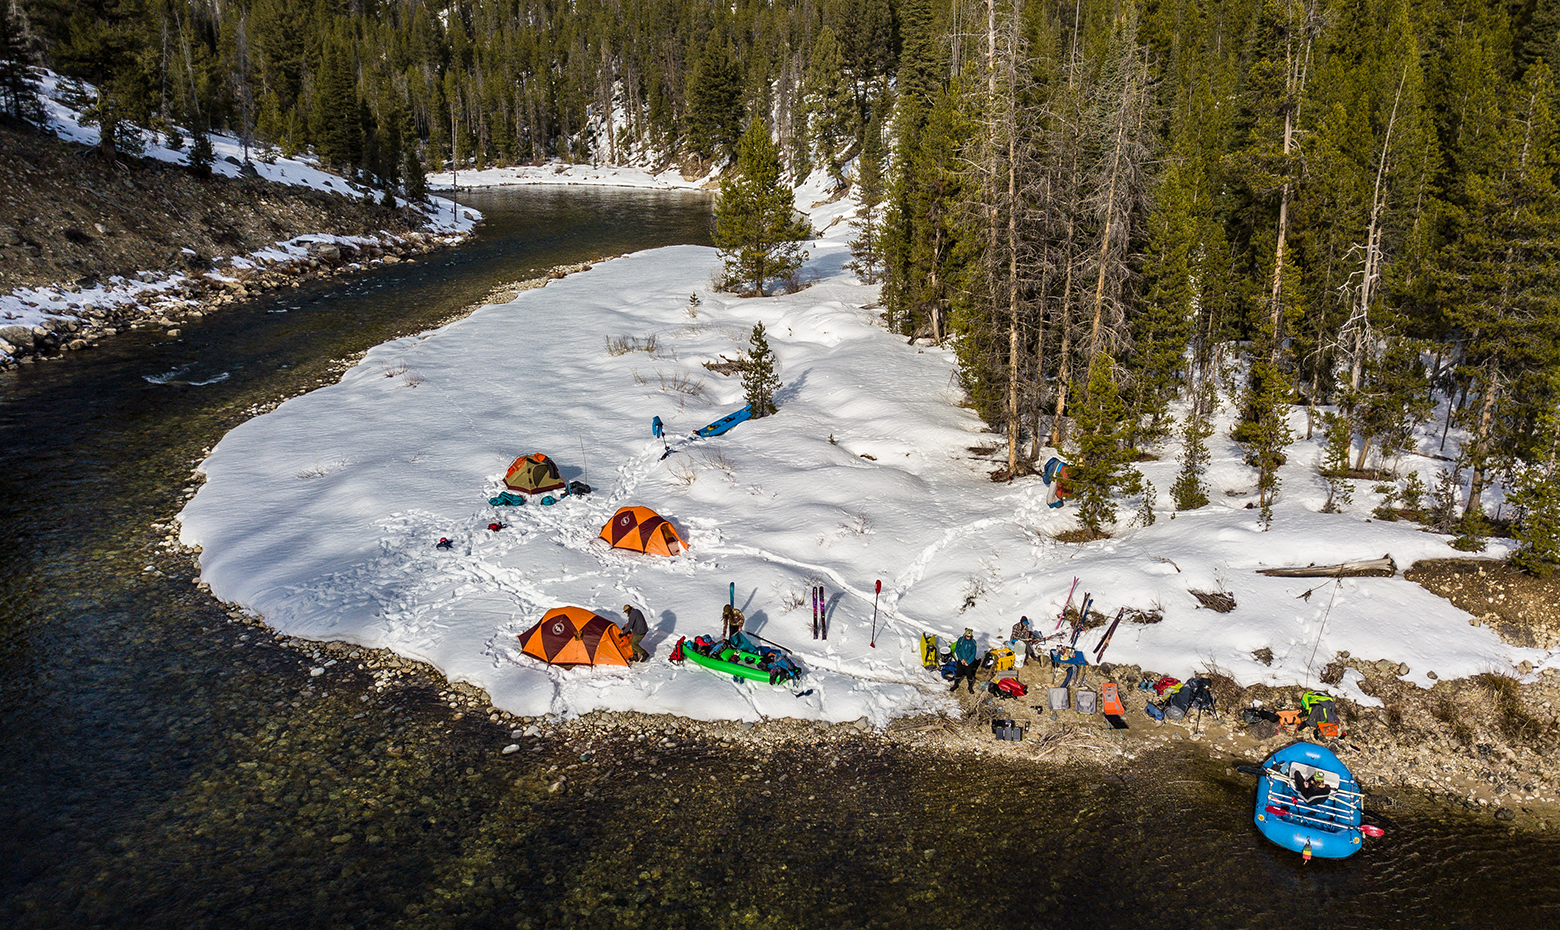 The Middle Fork has abundant designated campsites to park your raft and camp for the night.